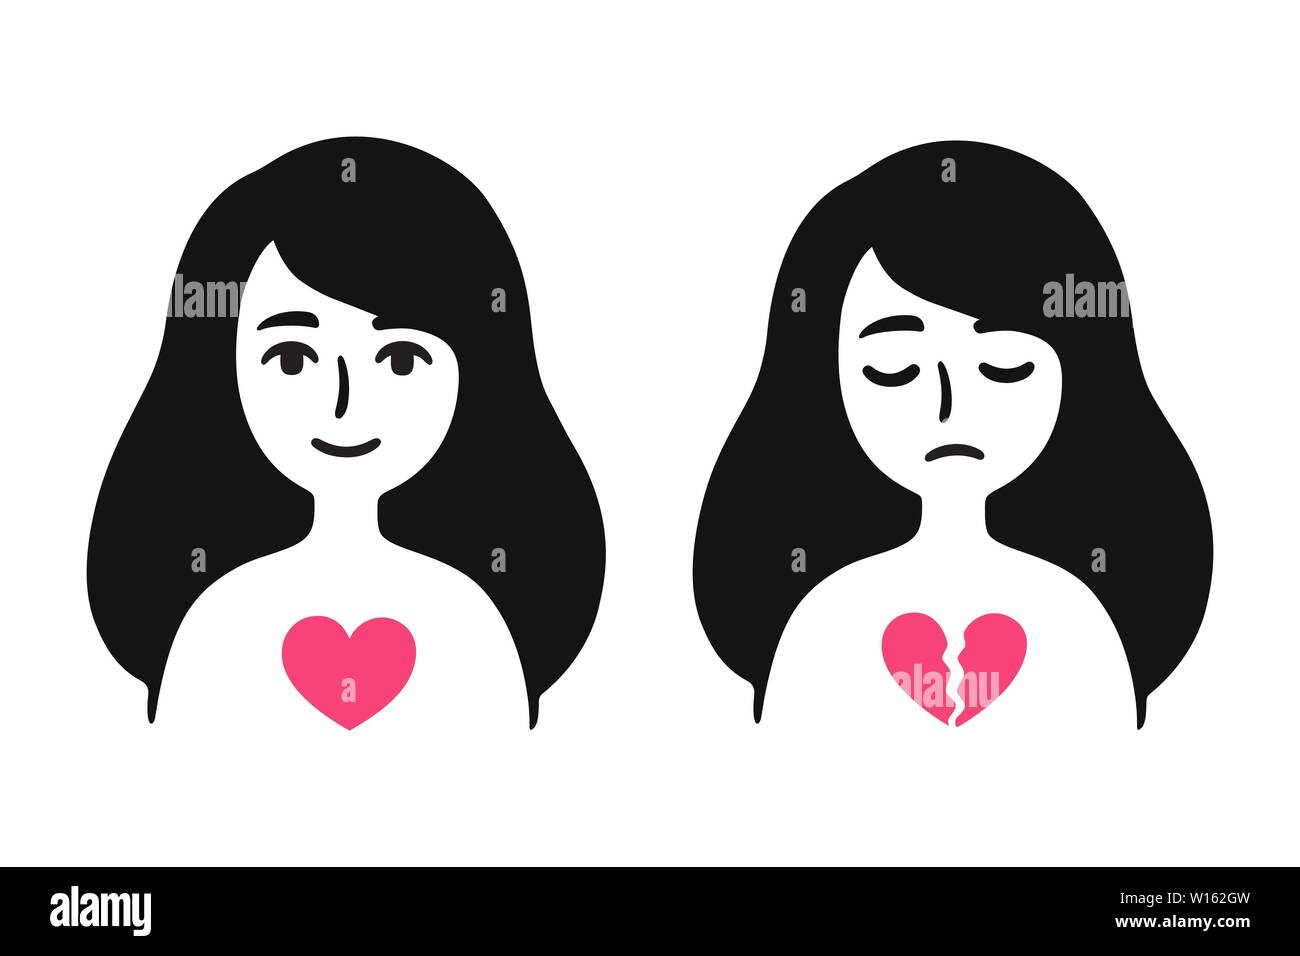 Girl In Love And Sad With Broken Heart Breakup Depression Feeling Sad About Relationship Problems Simple Cartoon Drawing Vector Clip Art Illustrat Stock Vector Image Art Alamy